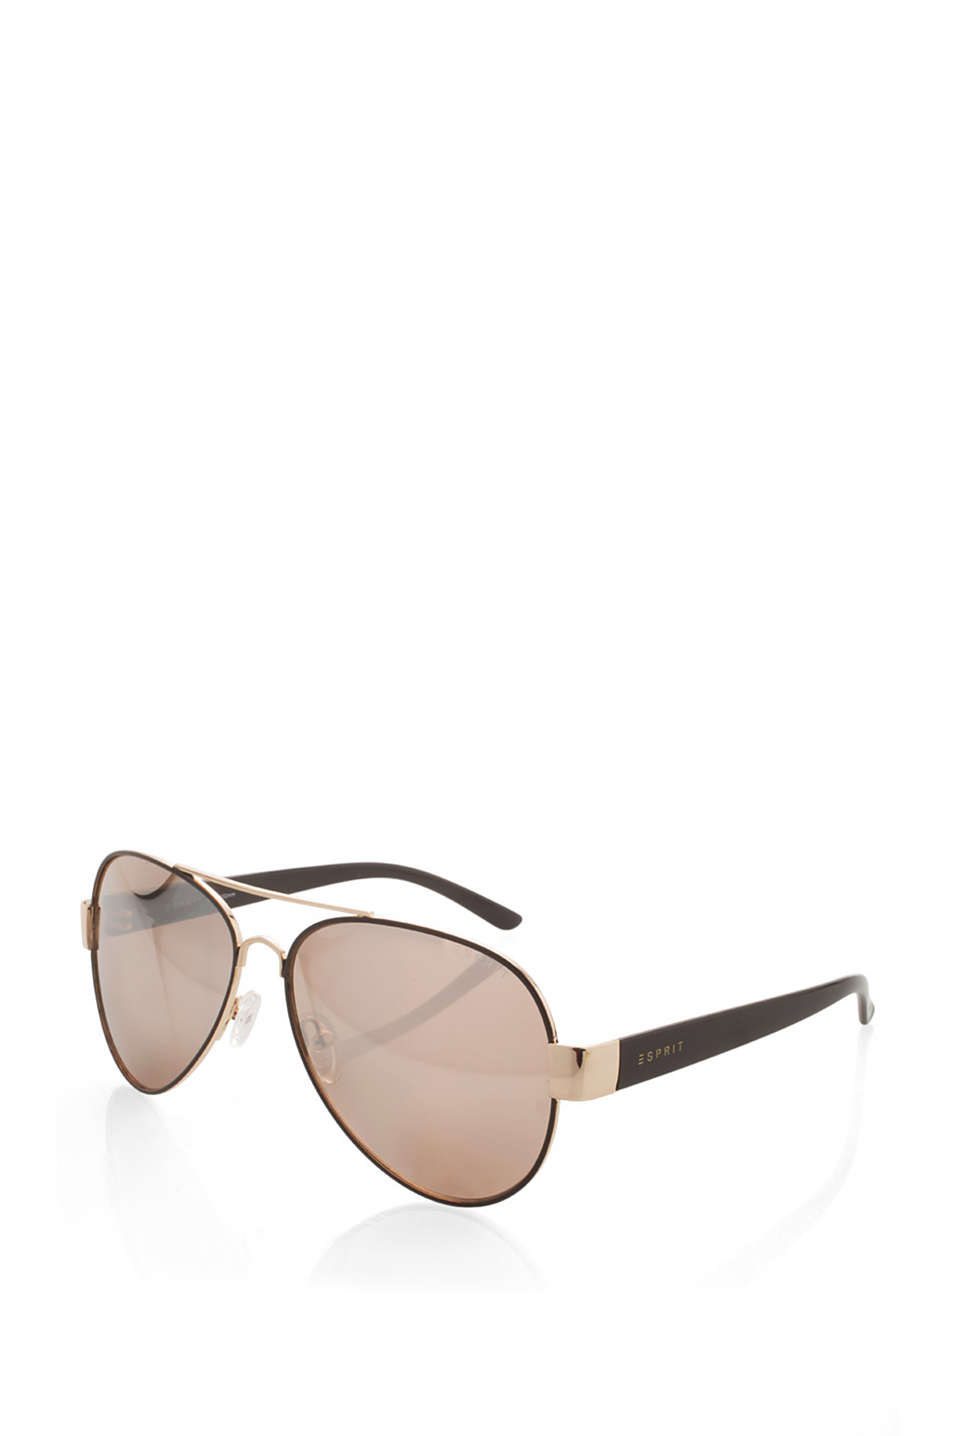 Sunglasses with contrasting temples in a timeless aviator design